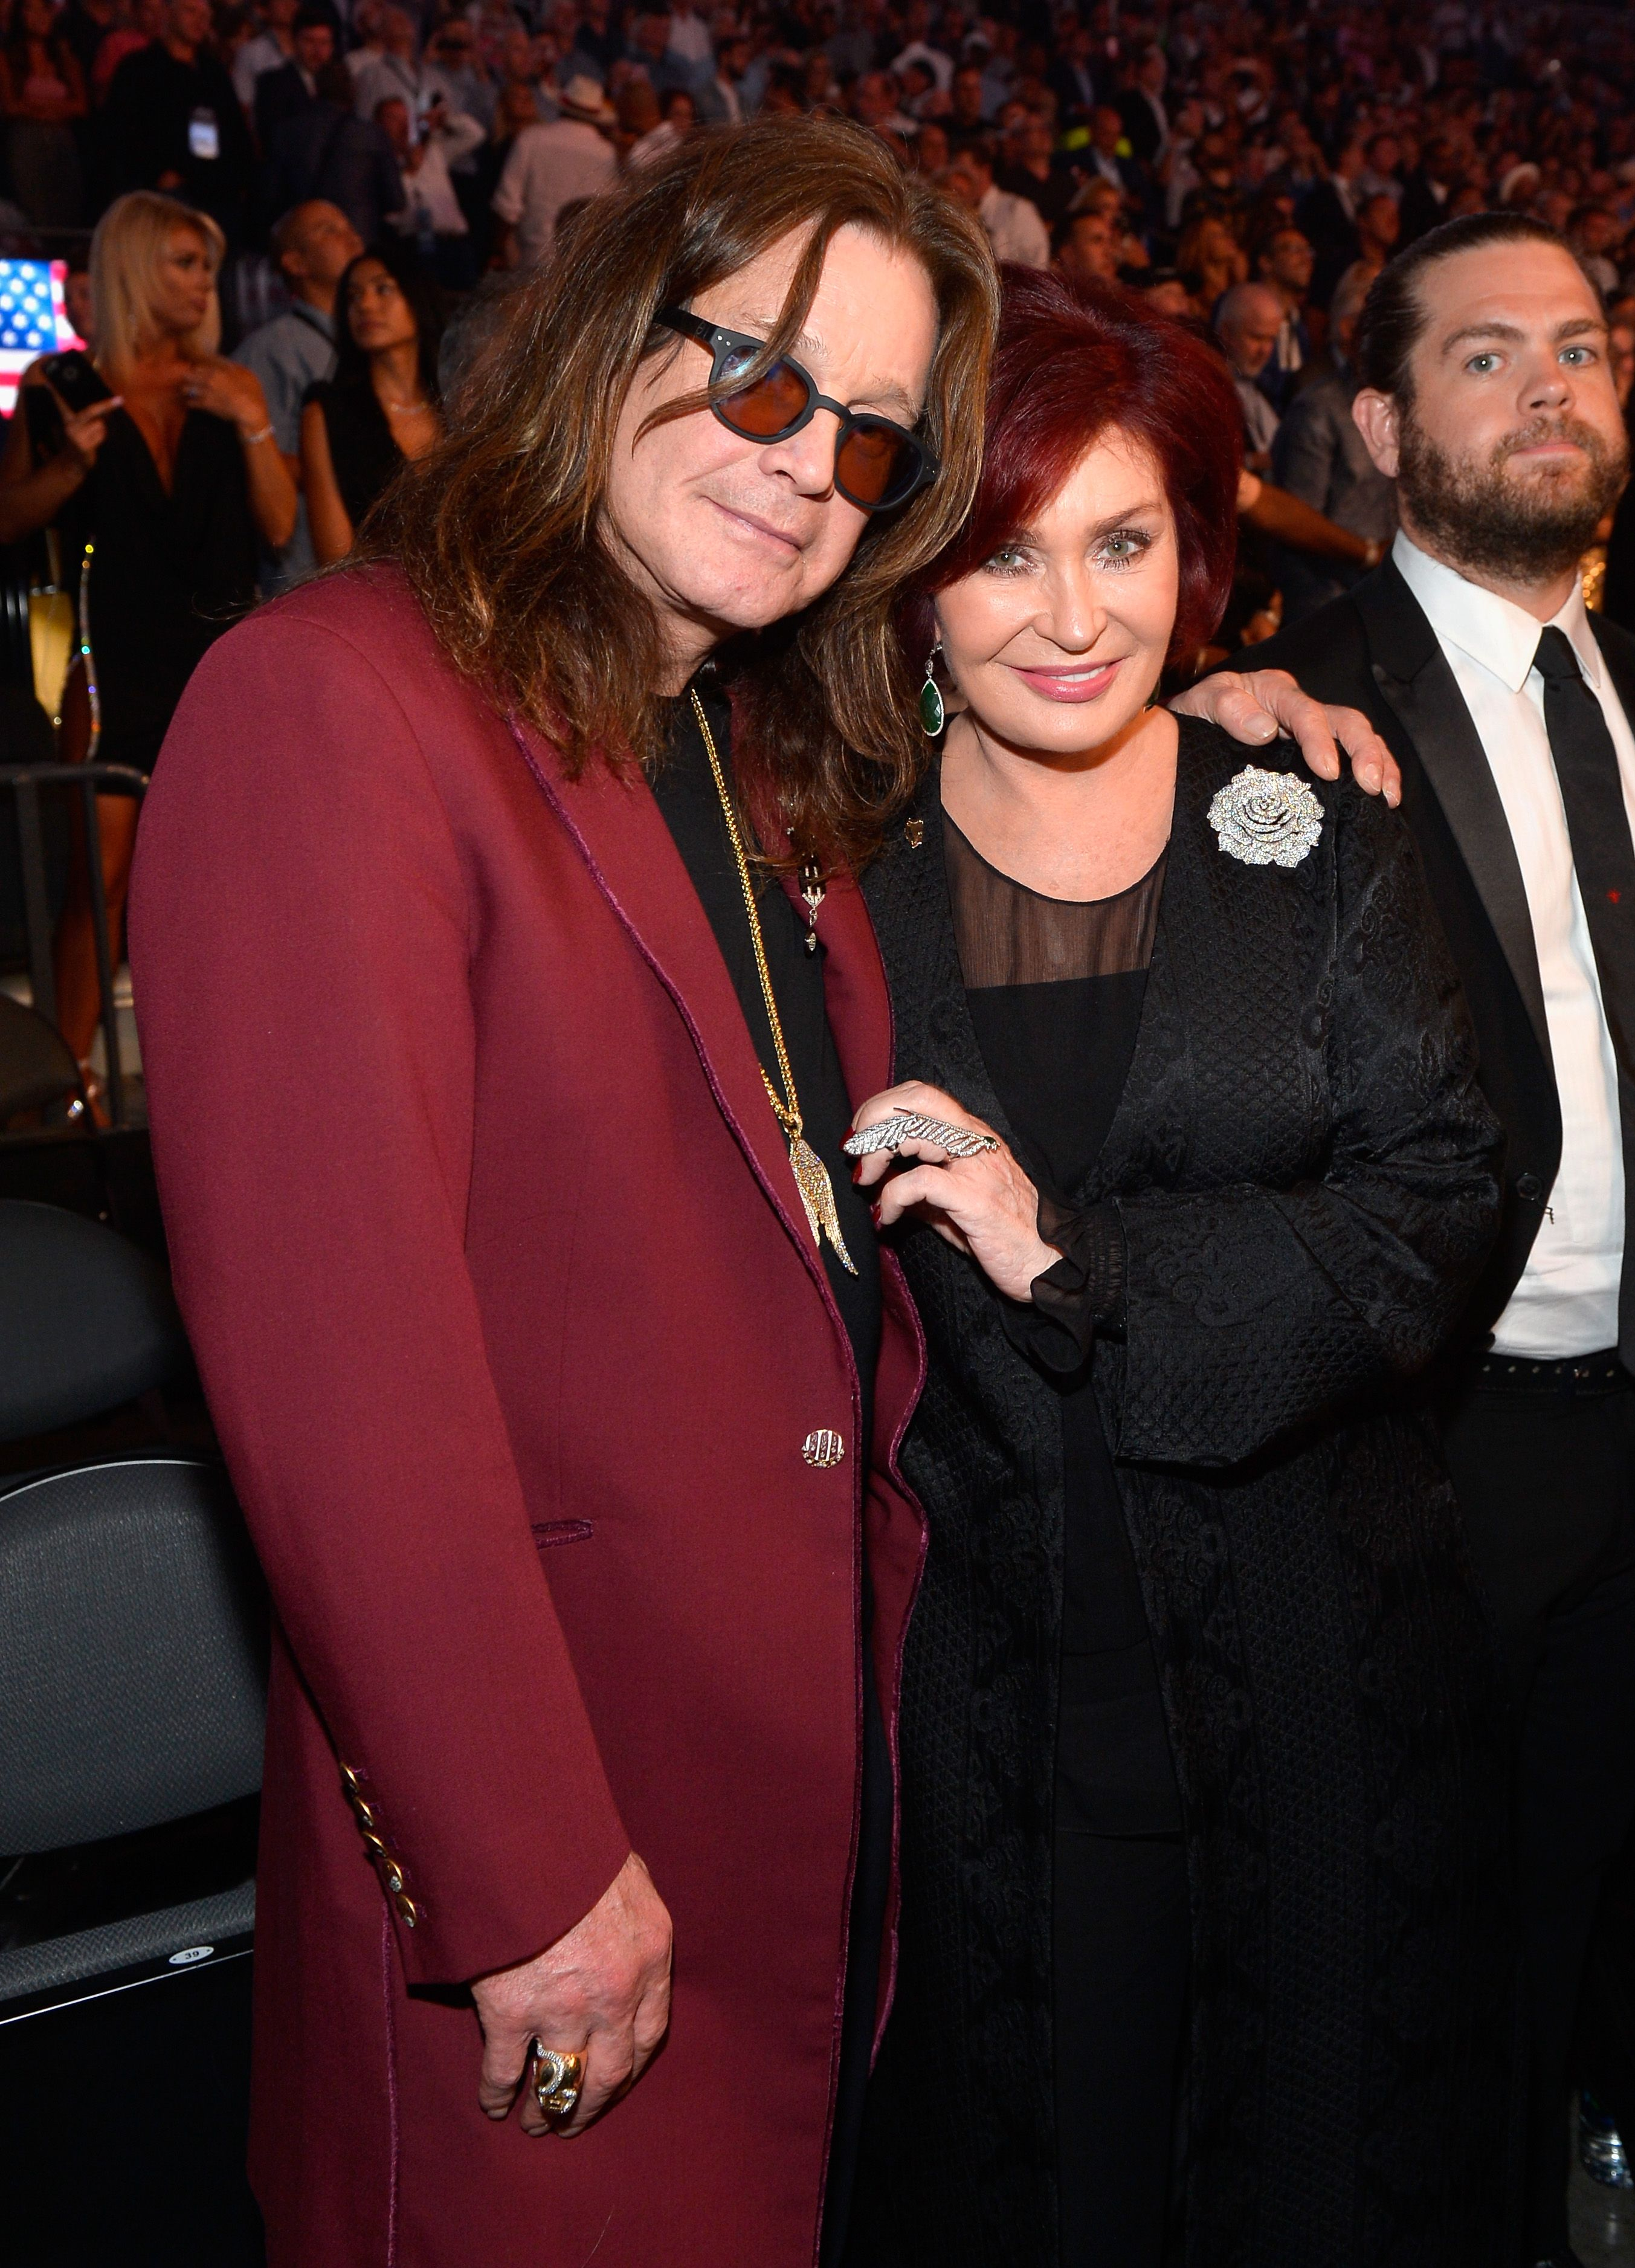 Singer Ozzy Osbourne and Sharon Osbourne at the Showtime, WME IME and Mayweather Promotions VIP Pre-Fight party for Mayweather vs. McGregor at T-Mobile Arena on August 26, 2017 | Photo: Getty Images